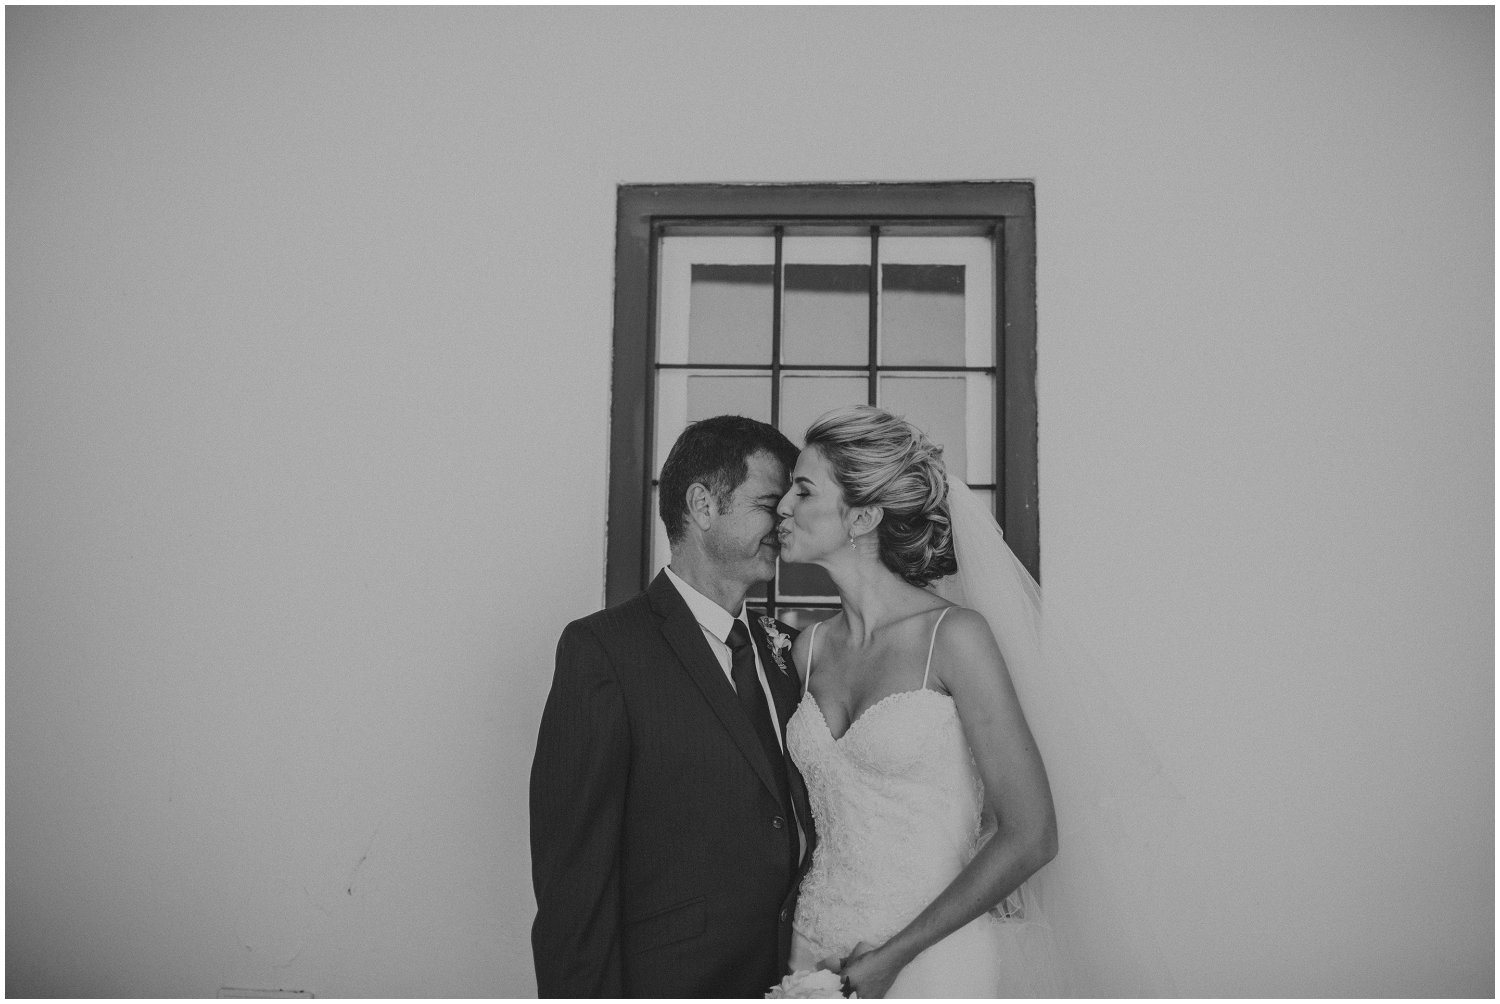 Top Artistic Documentary Wedding Photographer Cape Town South Africa Rue Kruger_0087.jpg